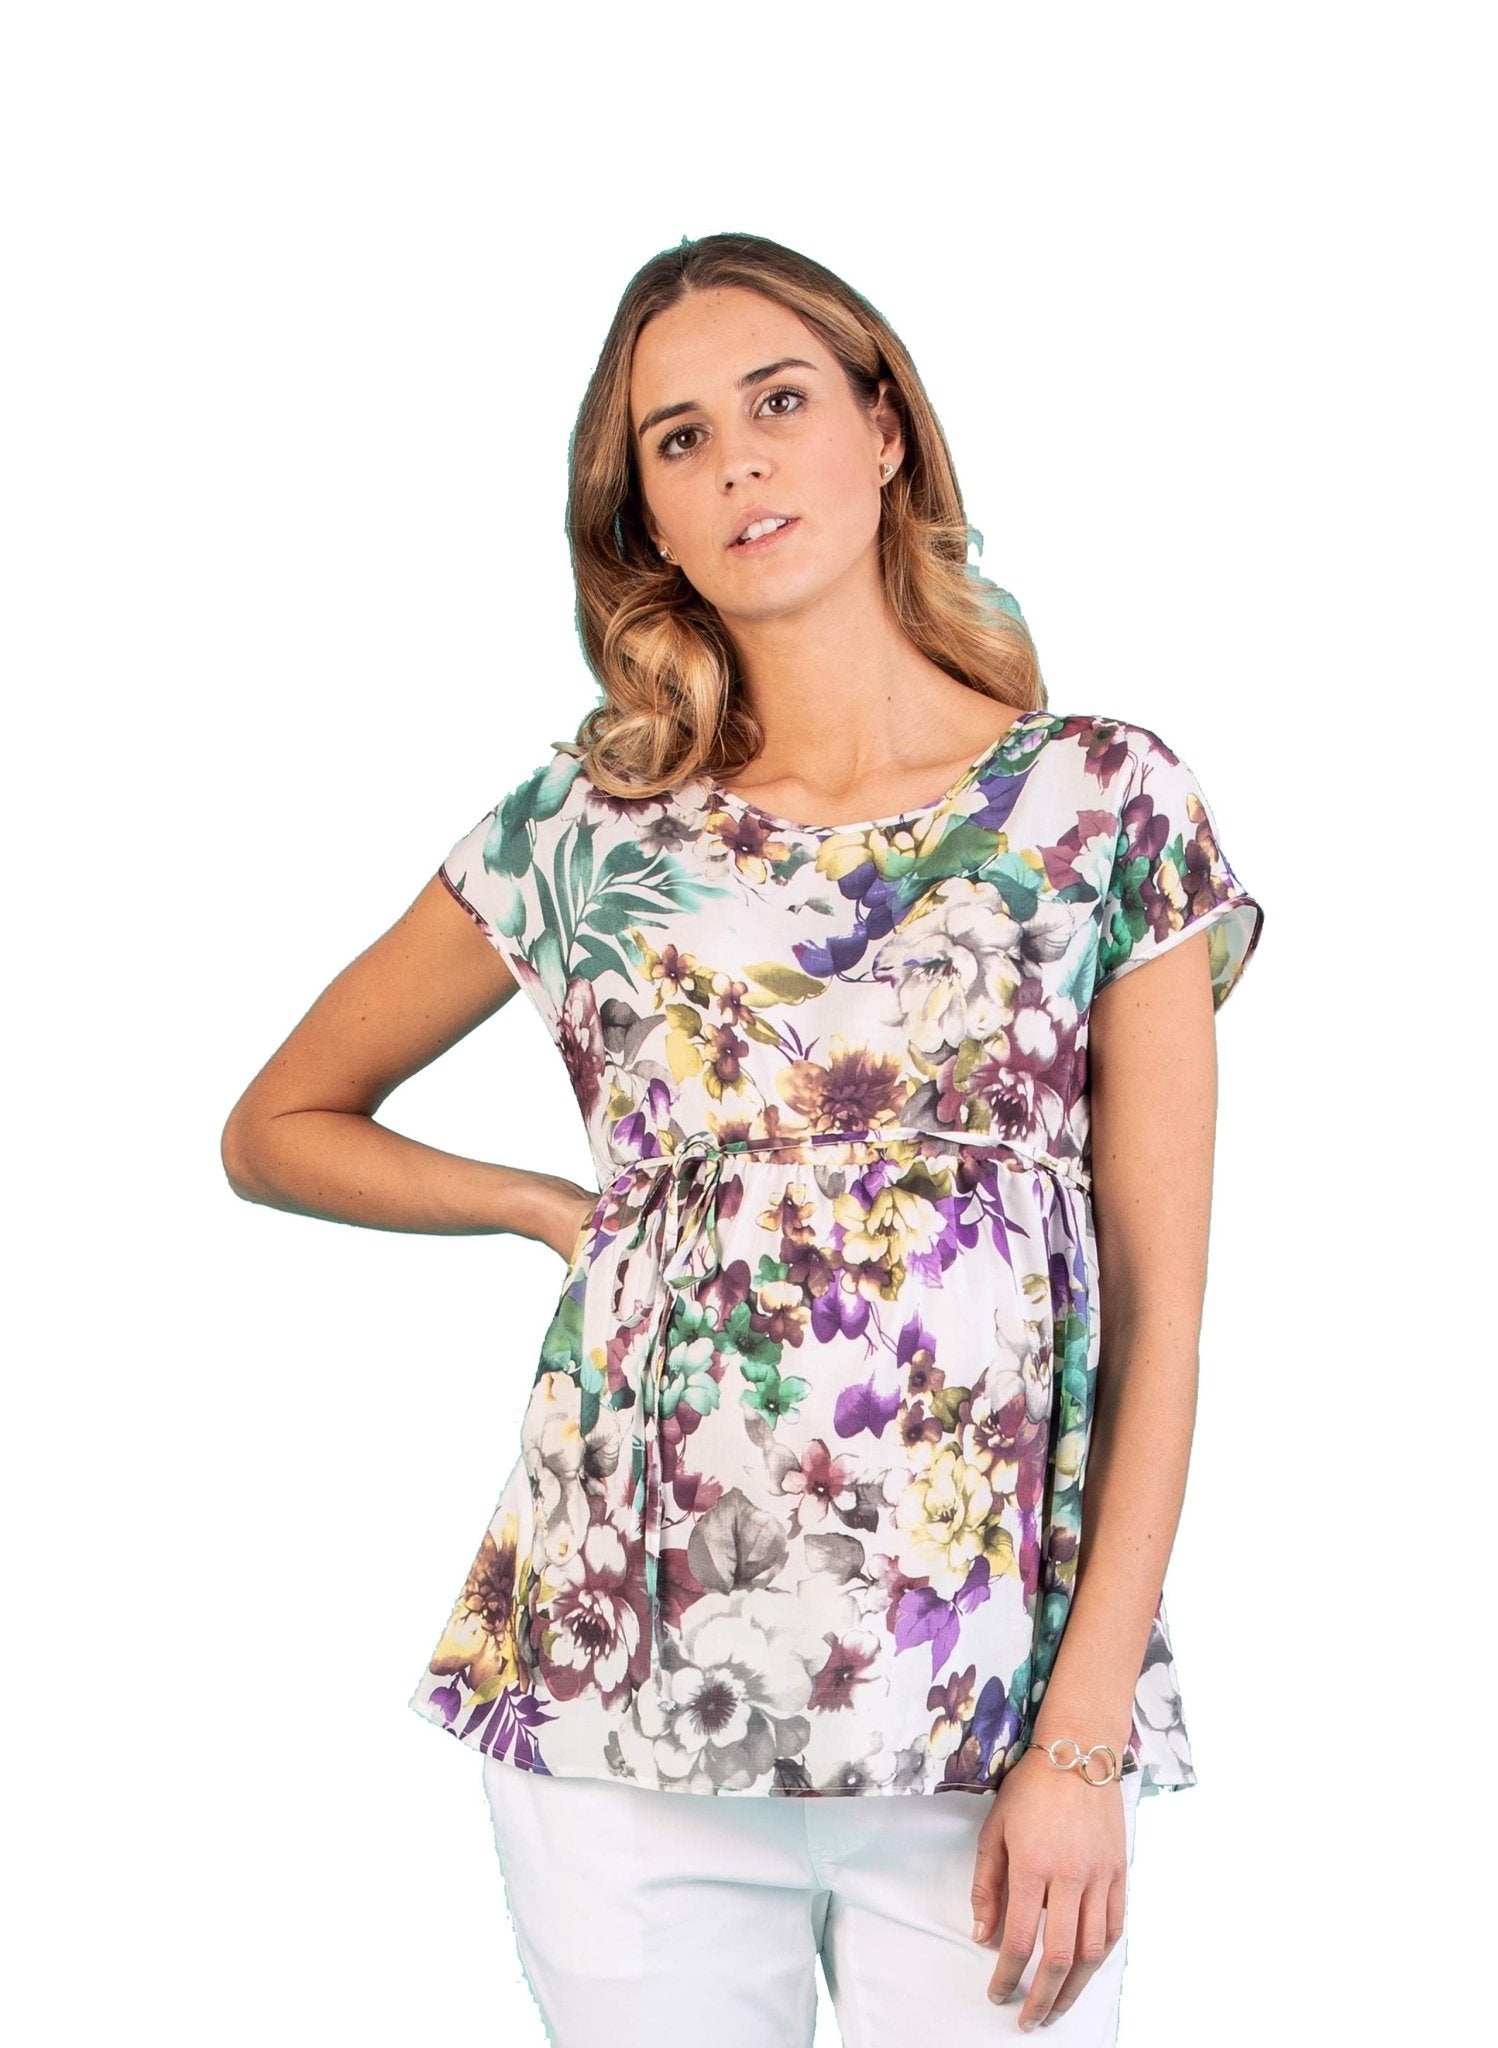 Floral Printed Maternity Top with Side String - Mums and Bumps